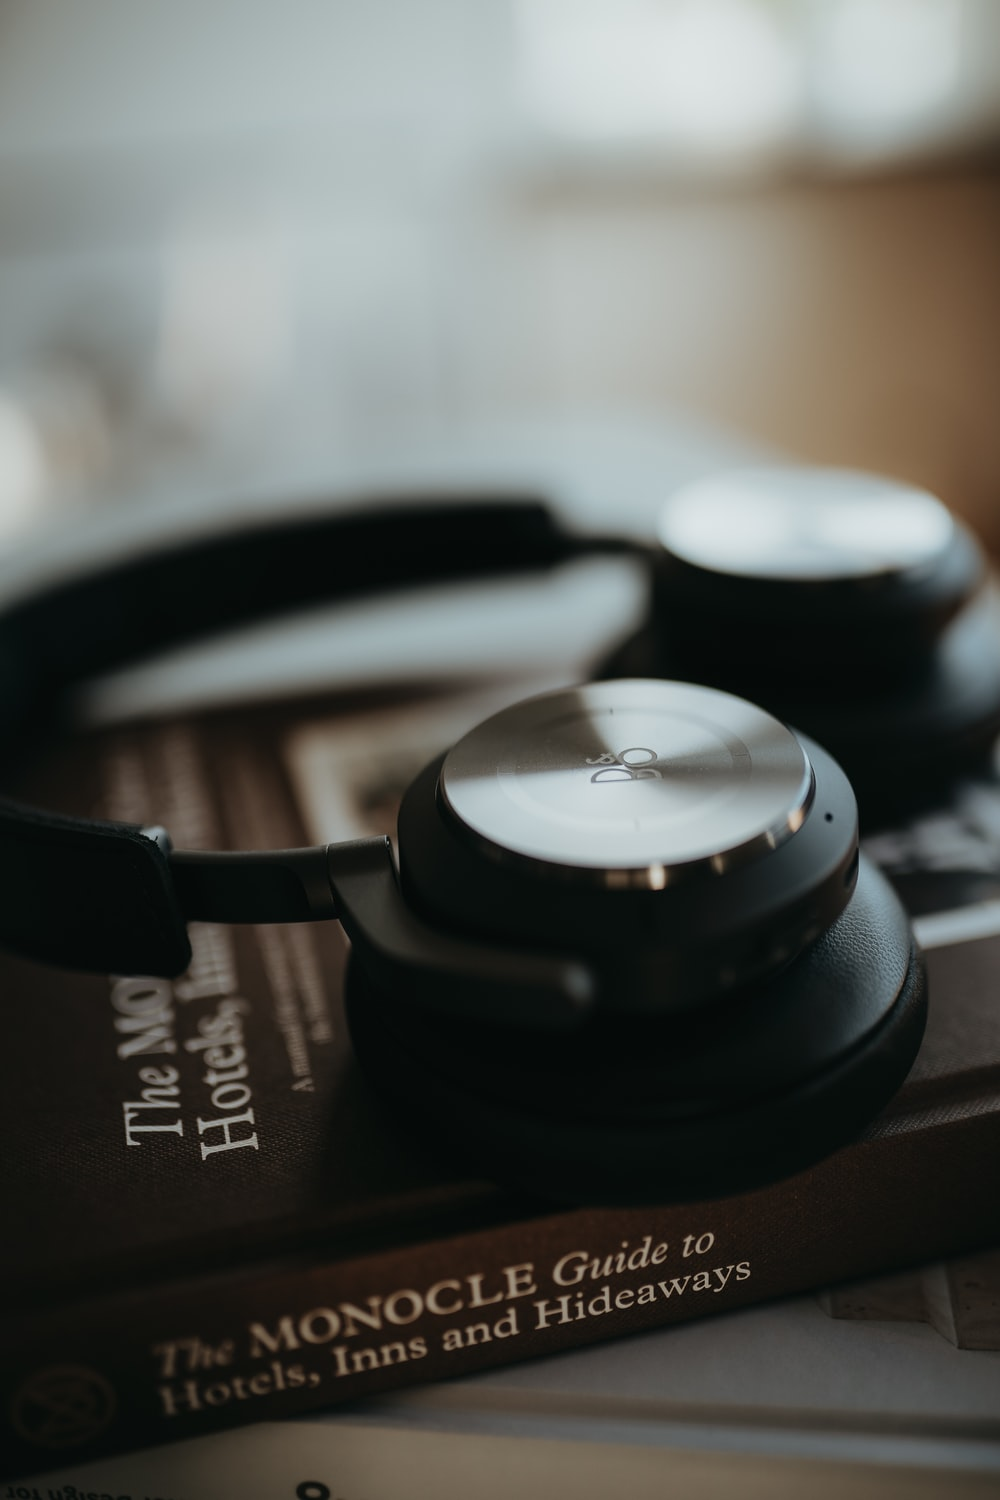 black and silver headphones on brown and black textile